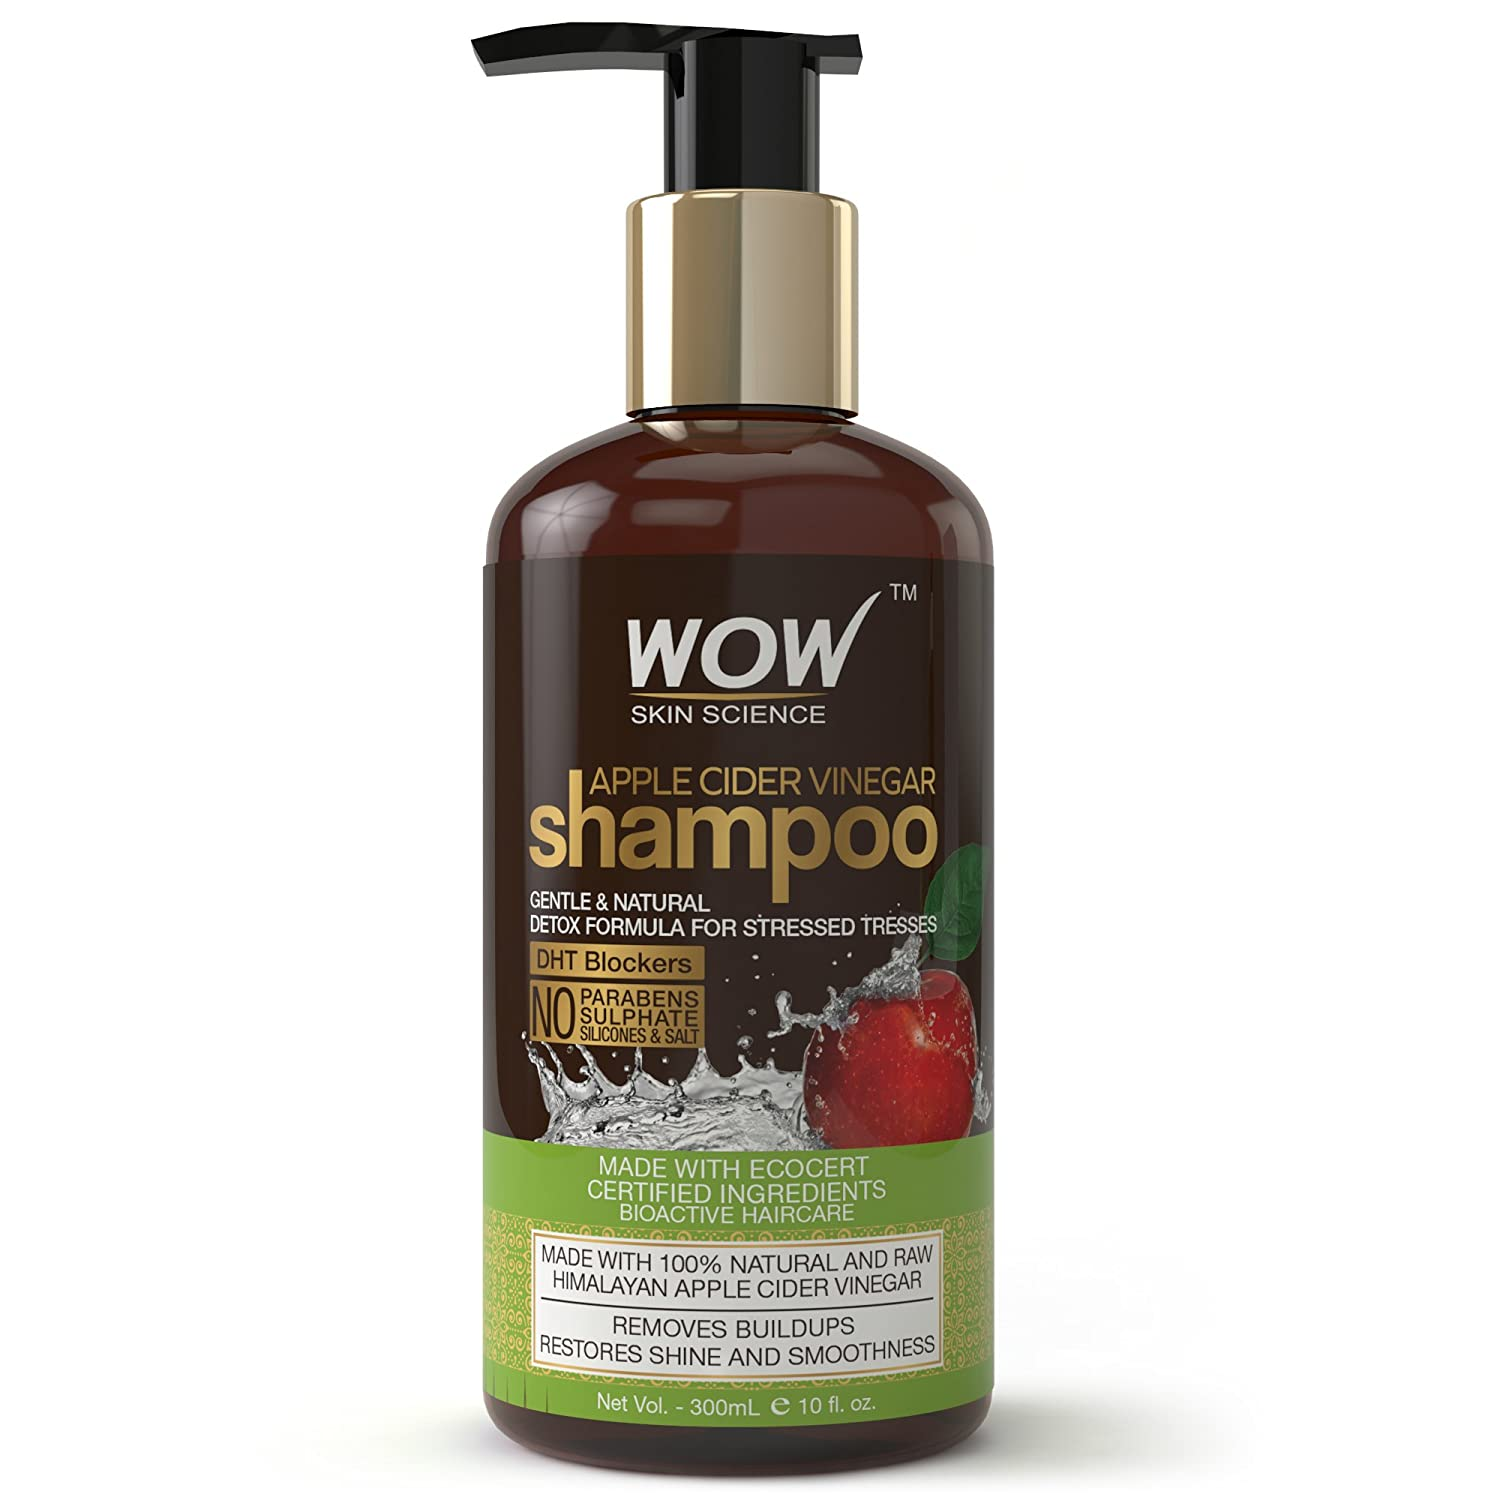 WOW Apple Cider Vinegar Shampoo, 300ml